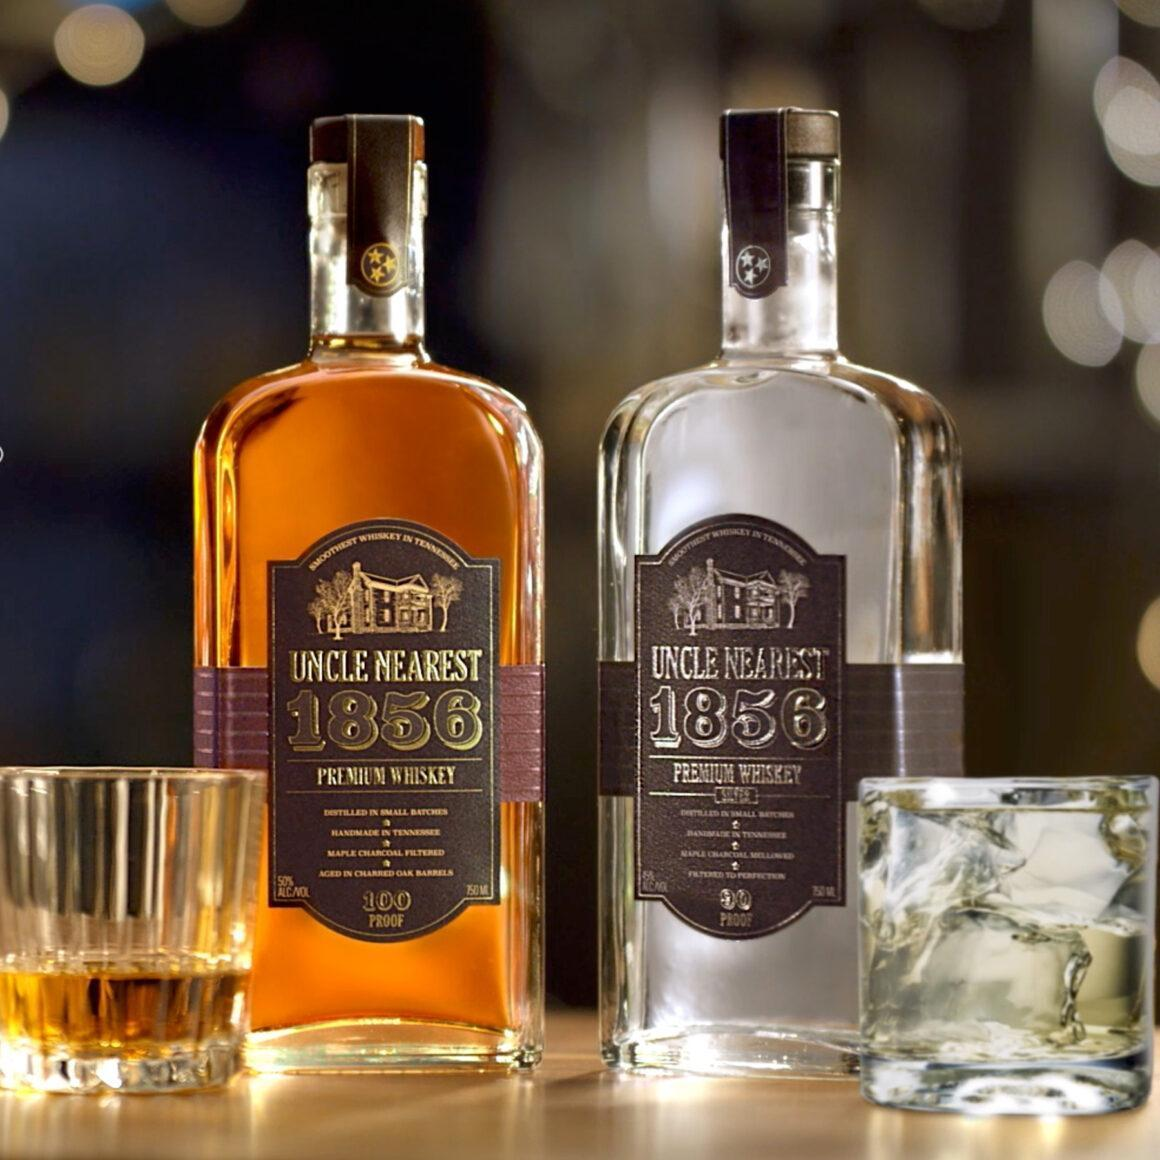 UNCLE NEAREST- AN ICONIC WHISKEY JOURNEY